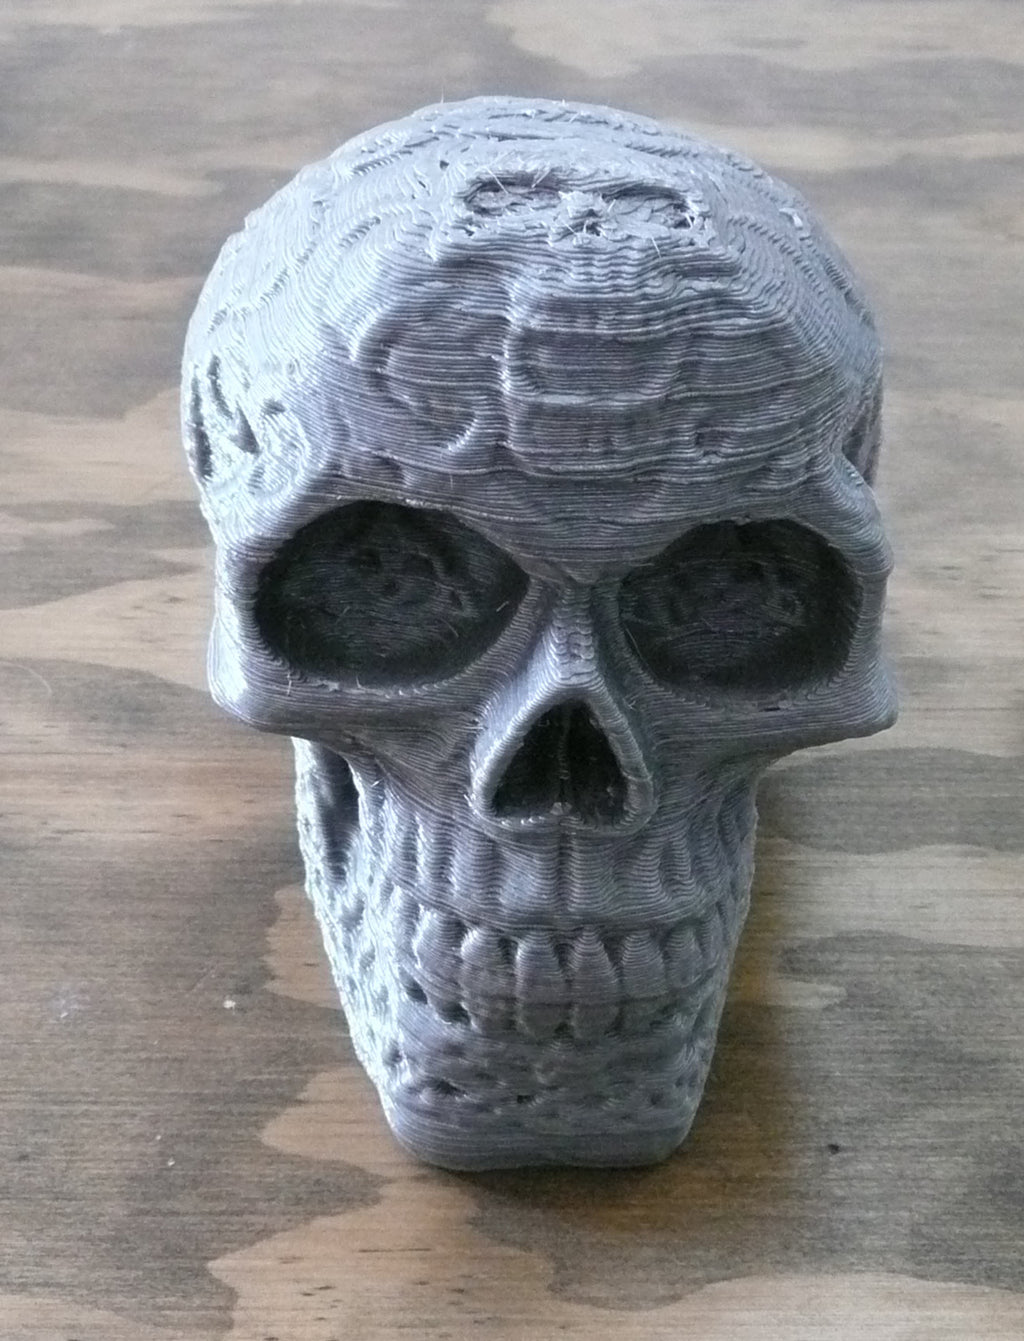 Celtic Knot Skull Figurine Statue Home Office Decor Decoration Made in USA PR23